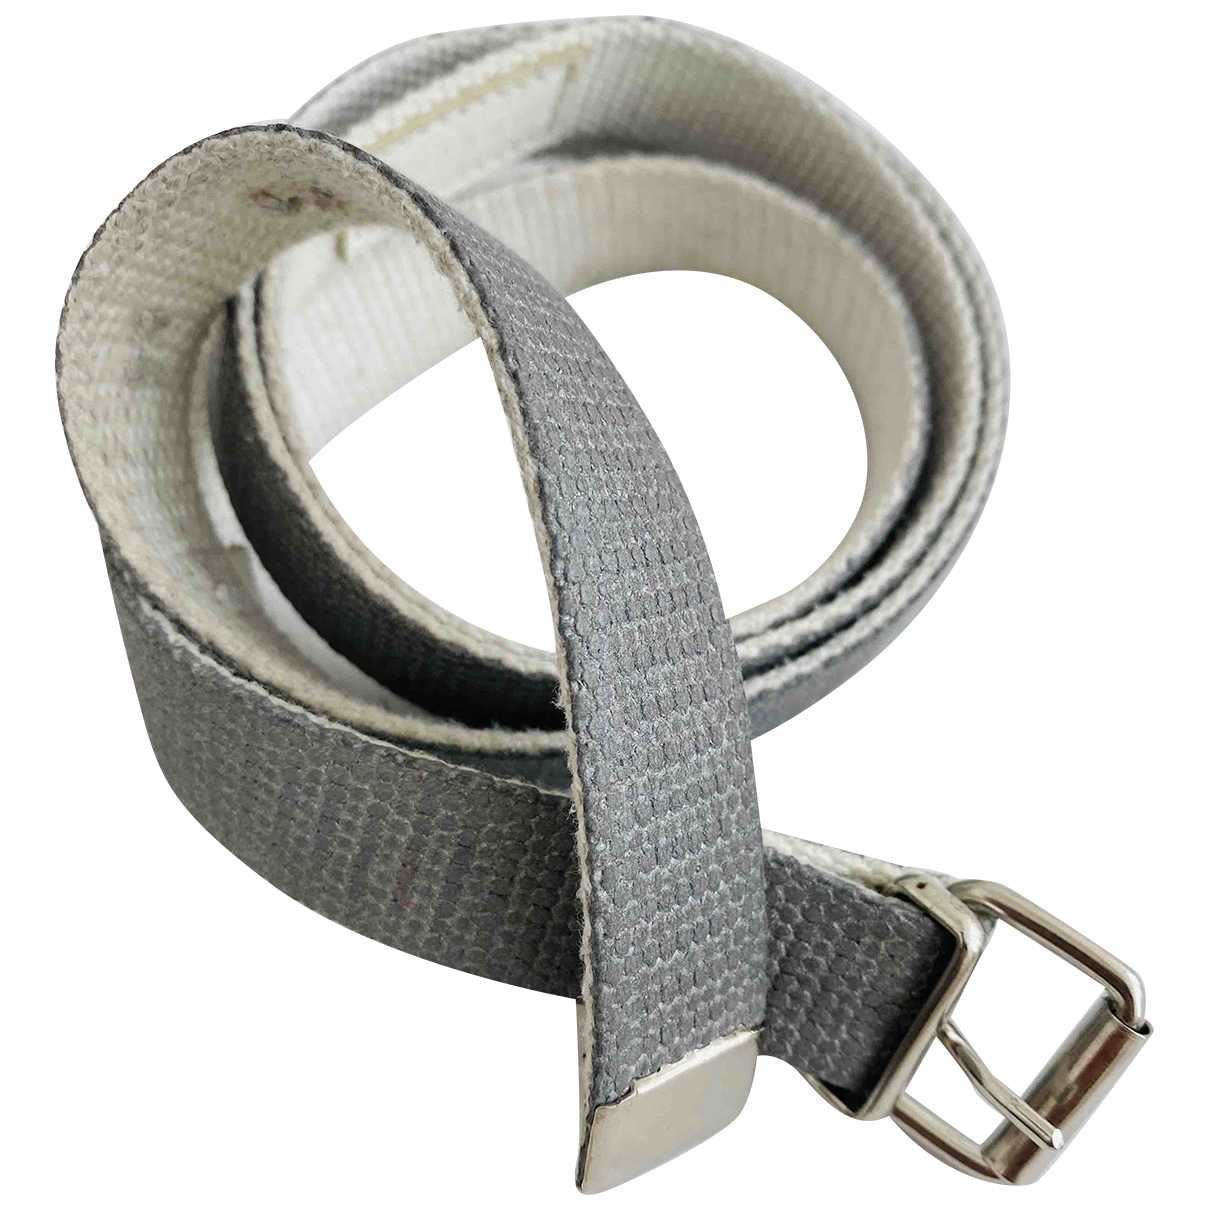 Maison Martin Margiela \N Silver Cloth belt for Men M international